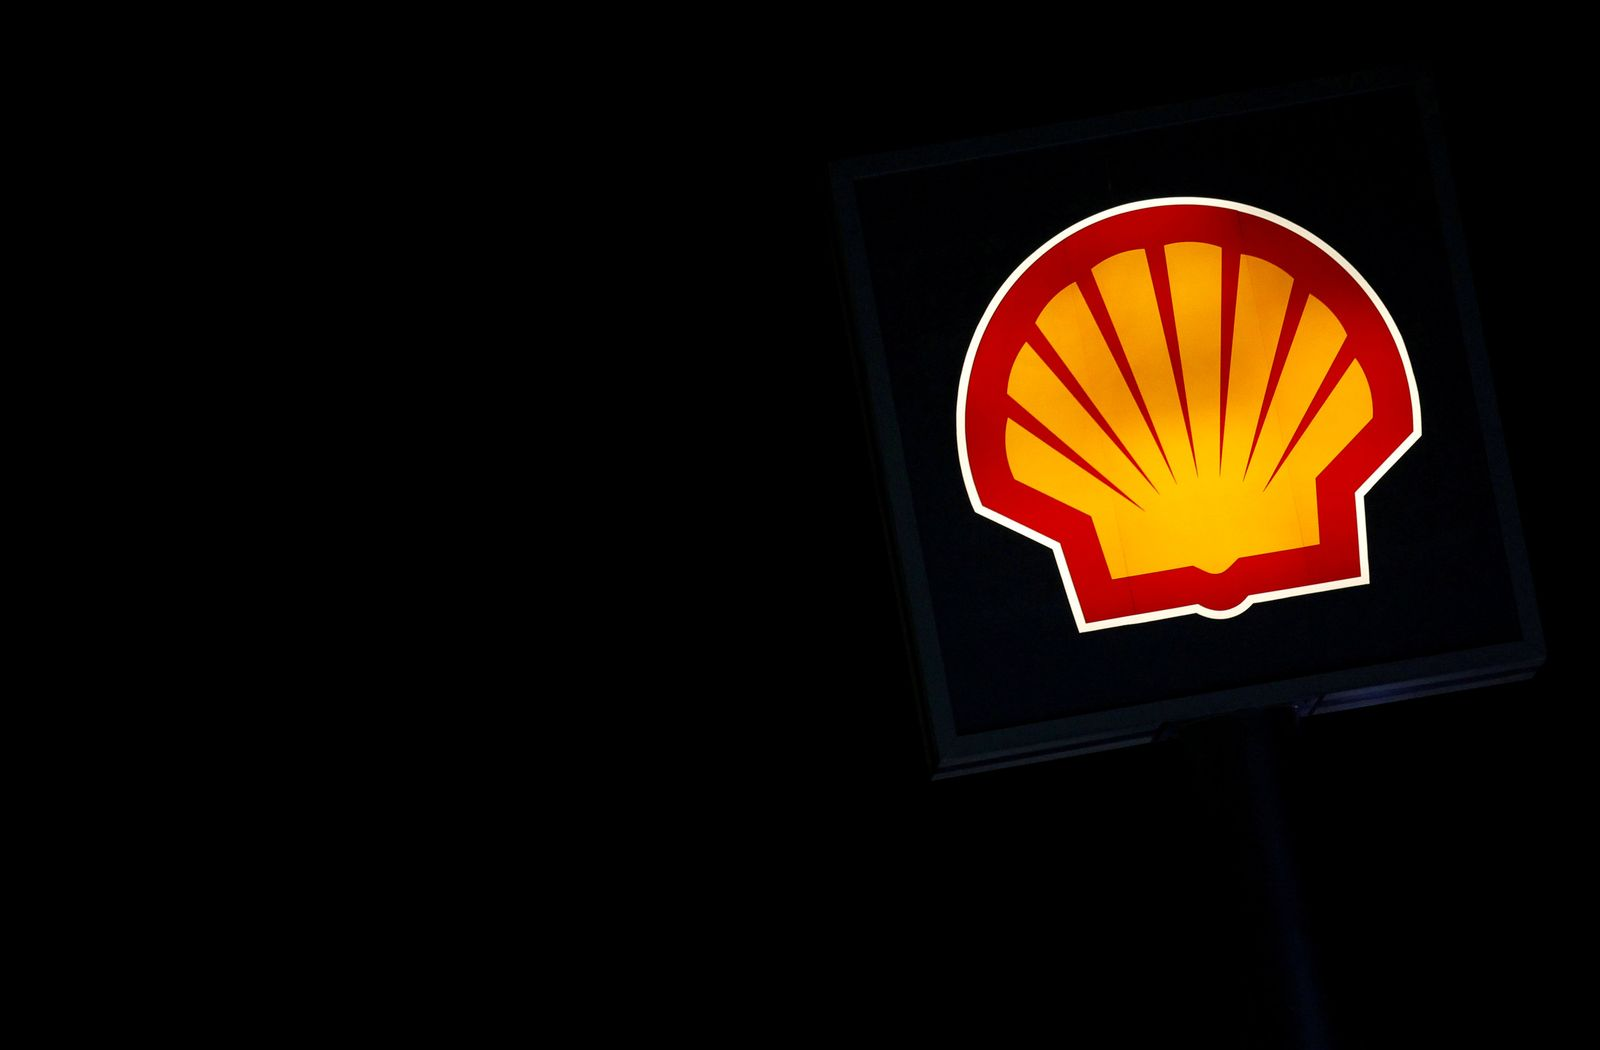 SHELL-RESULTS/